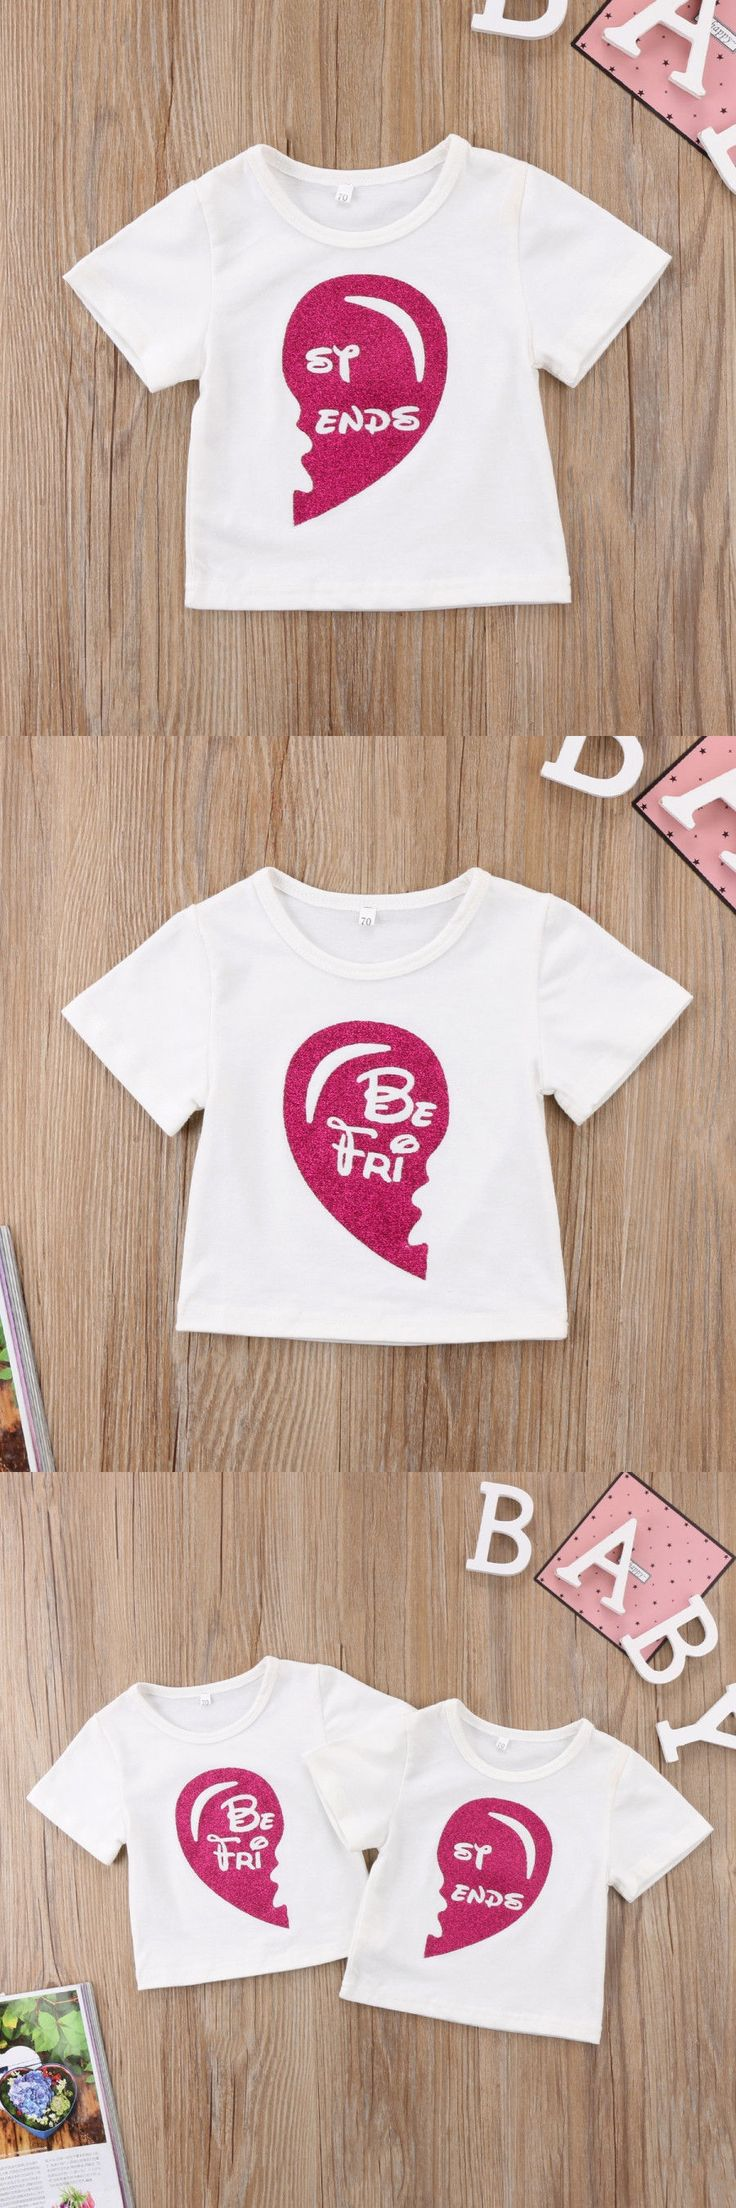 Good Formal Letter%0A Family Matching Toddler Kids Baby Girls Sister Best Friend Letter Printed  Short Sleeve Top T